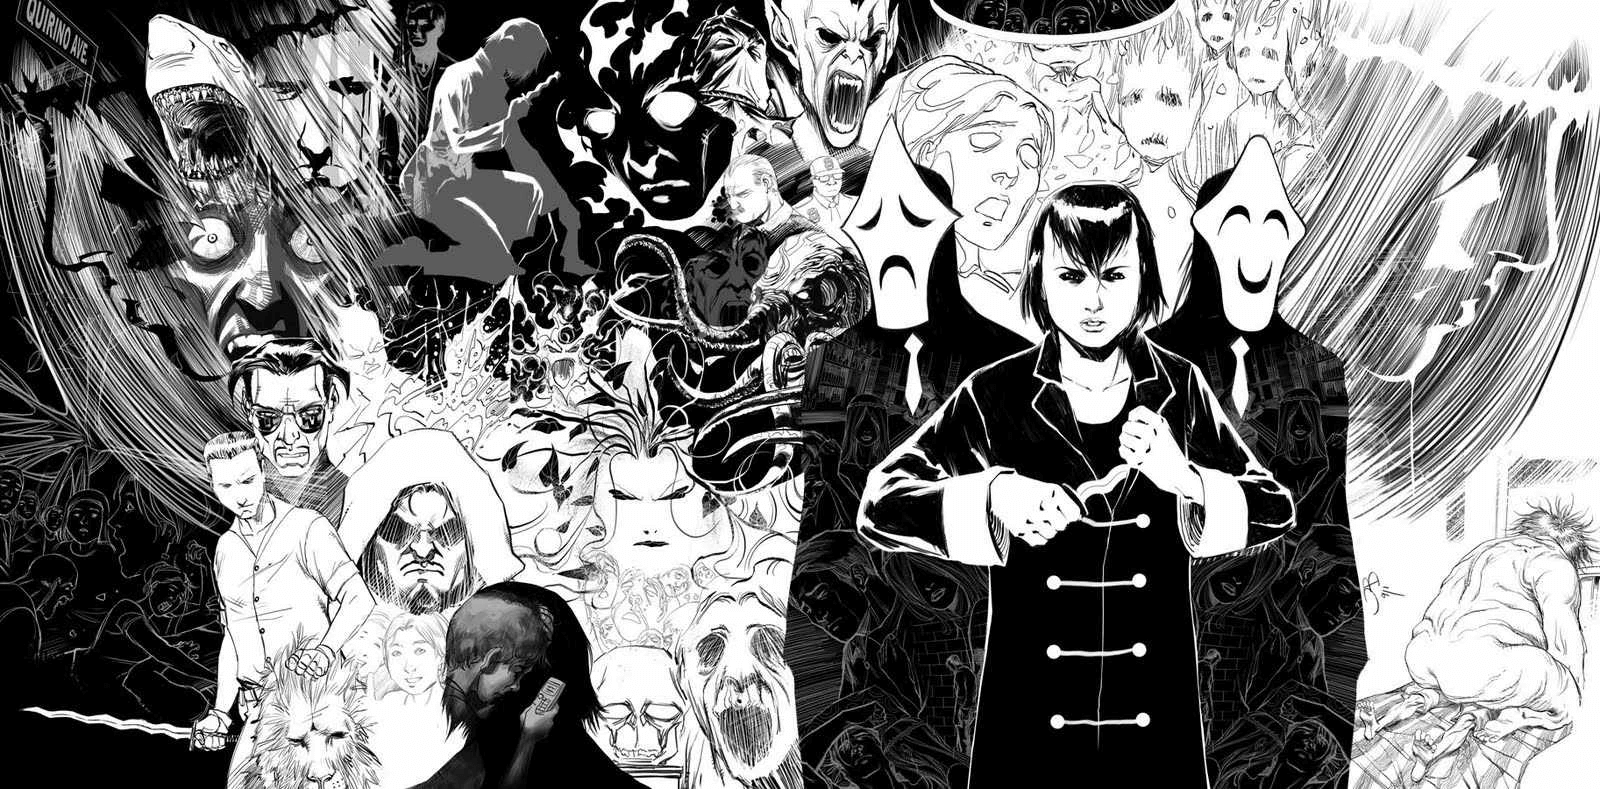 An illustrative collage of various characters from the series Trese, set as a backdrop behind a young woman and a pair of two dark-suited figures wearing masks. The woman has short black hair and and holds a knife, holding its point with another hand.